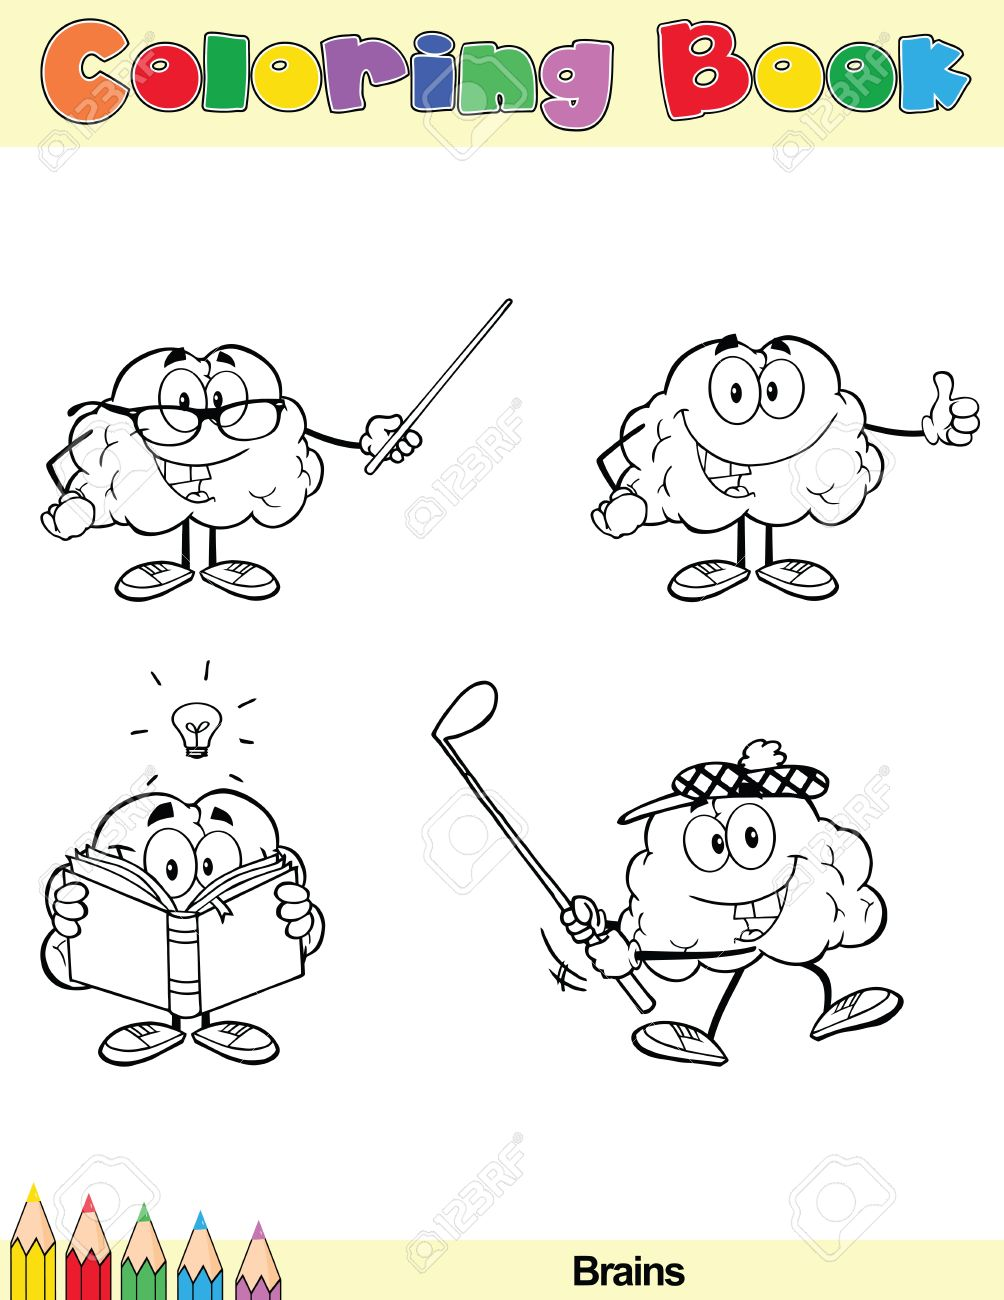 Coloring Book Page Brain Cartoon Character 6 Royalty Free Cliparts ...